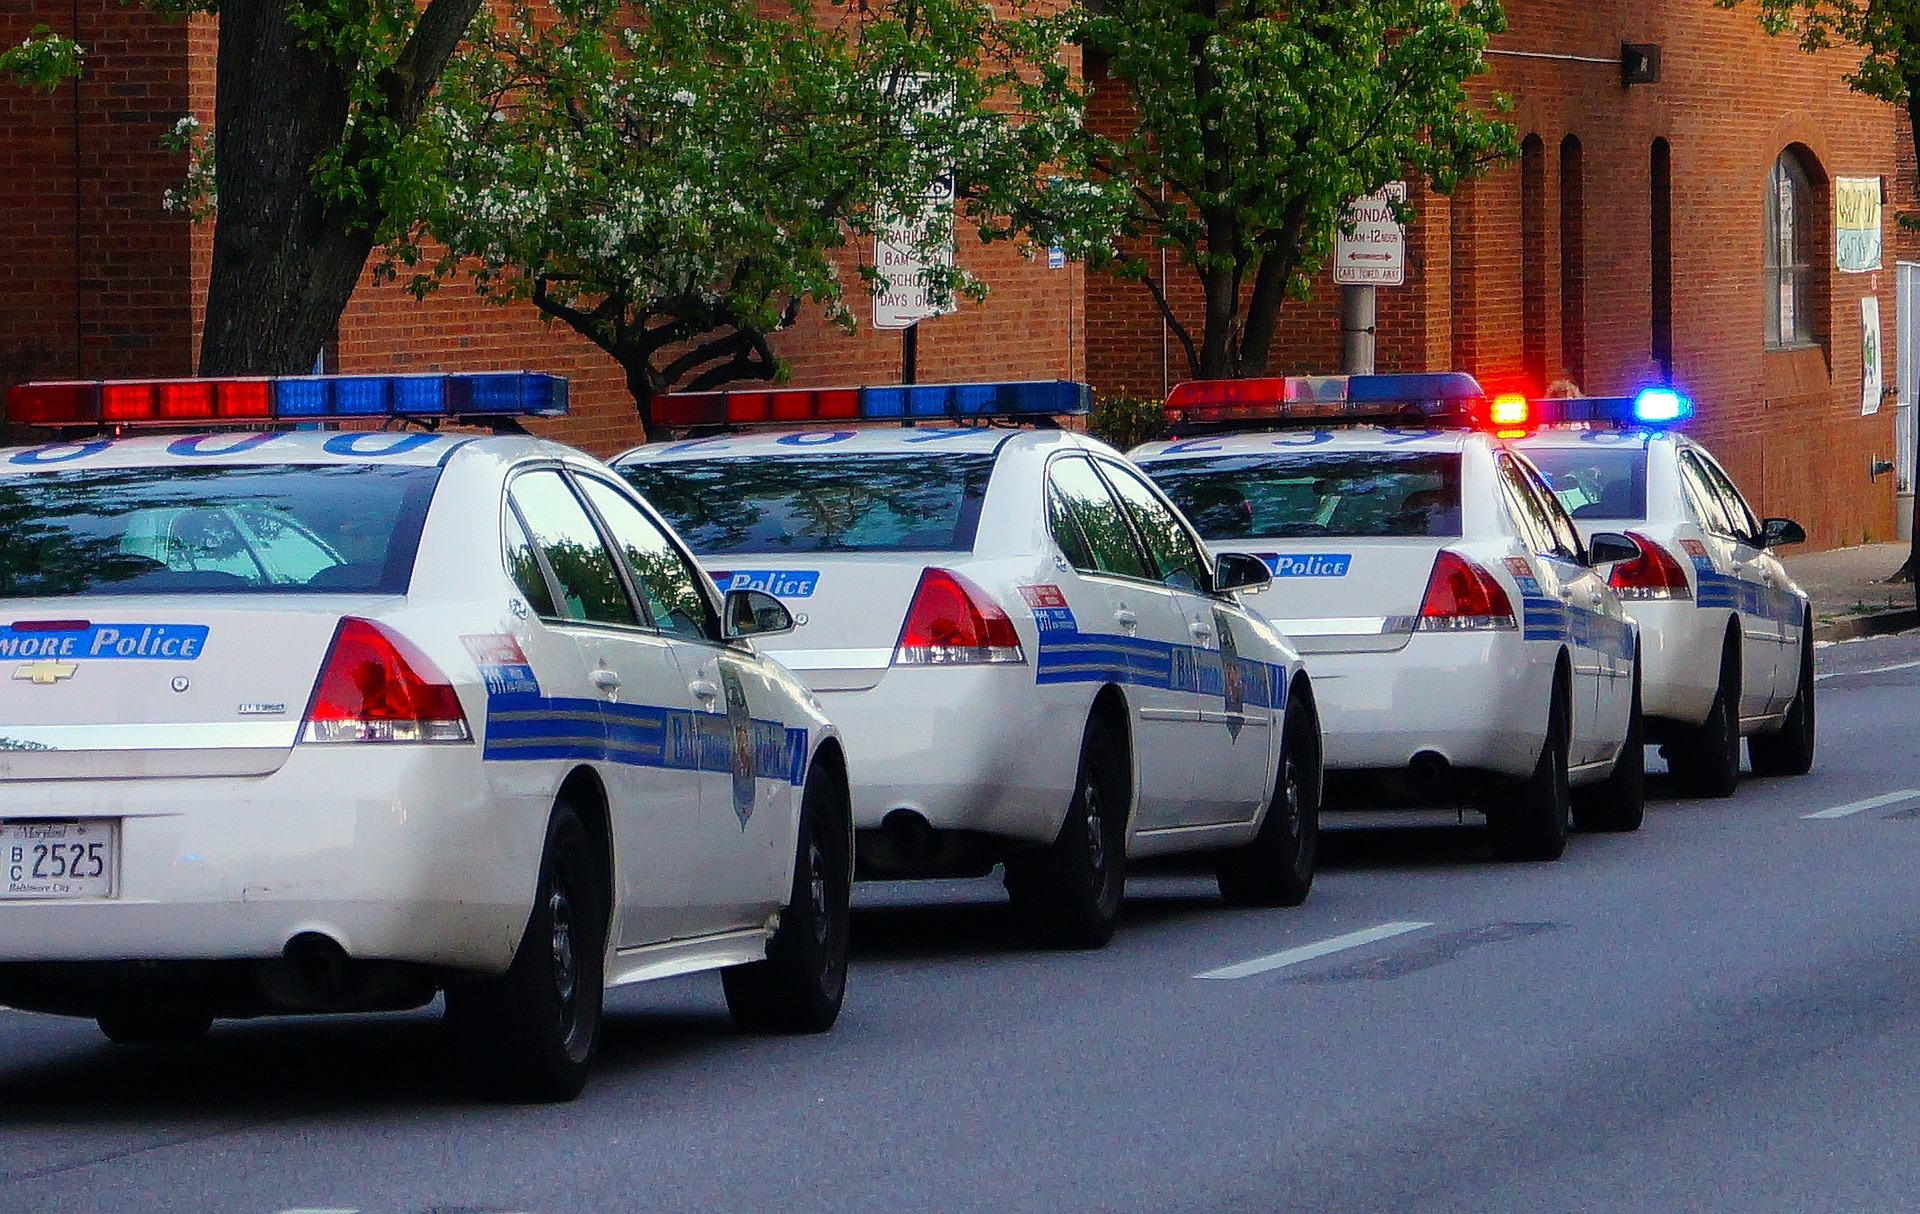 N.C. City Begins Tracking City, Police Vehicles with GPS